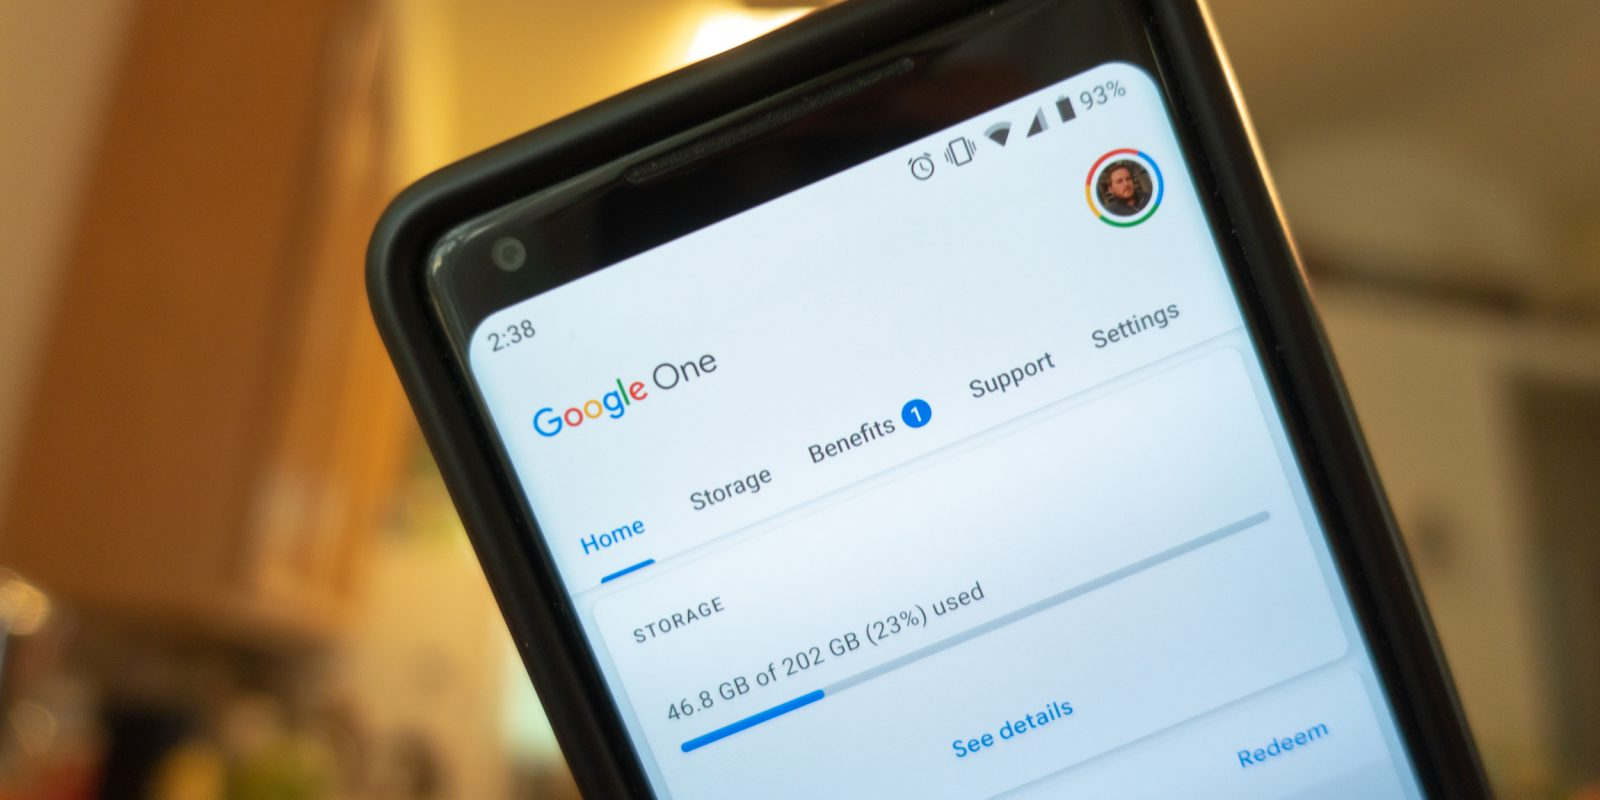 Hands-on: Google One app makes it easy to manage storage